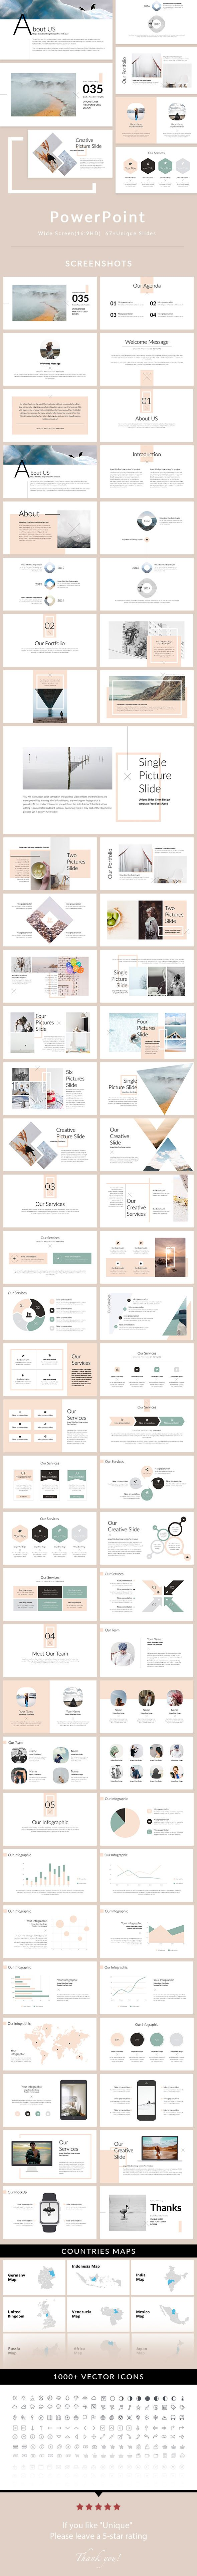 PowerPoint Presentation Template — Powerpoint PPT #corporate #flow chart • Download ➝ https://graphicriver.net/item/powerpoint-presentation-template/20200481?ref=pxcr